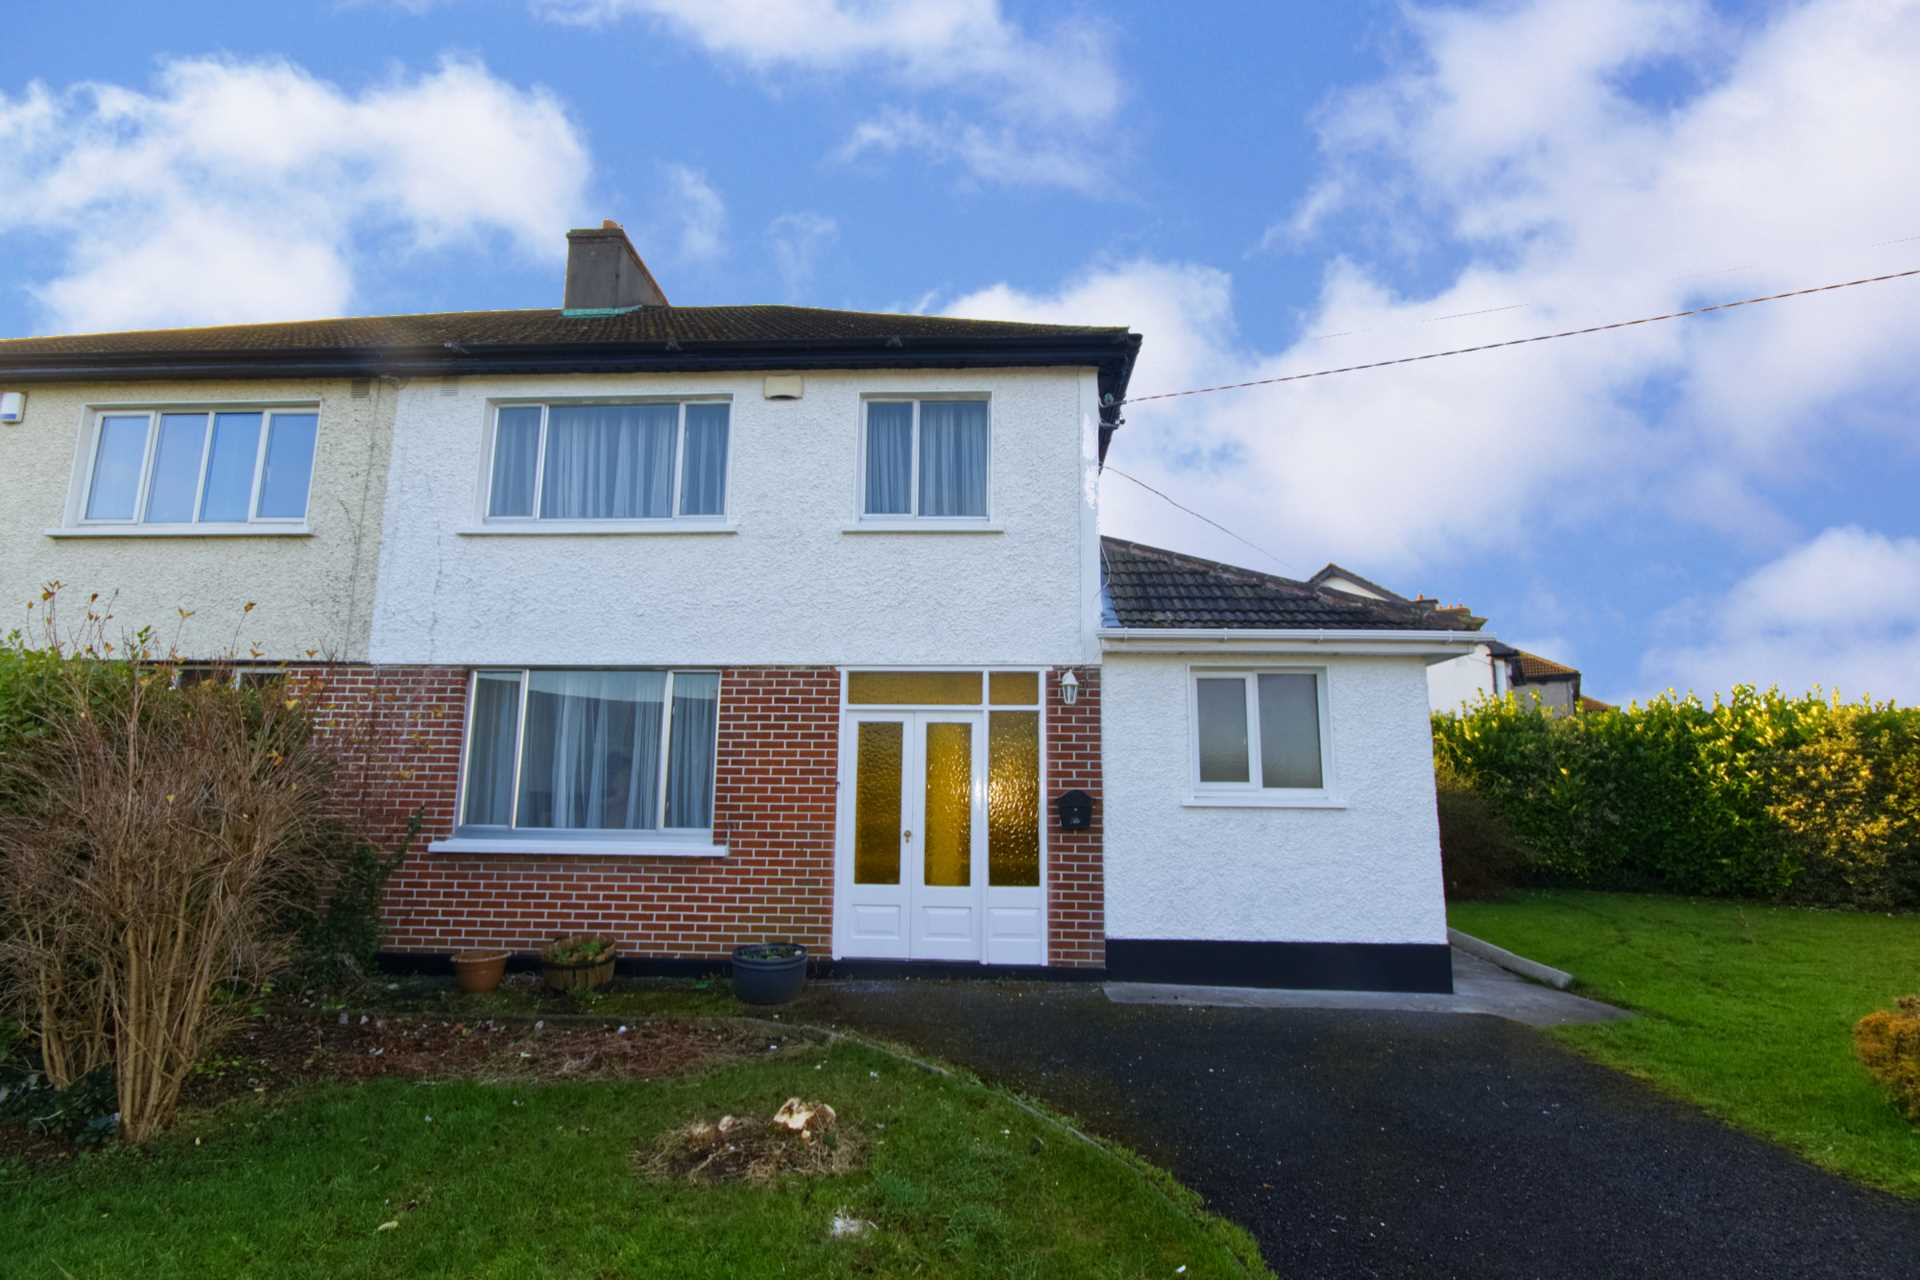 18 Millgate Drive, Perrystown, Dublin 12, Image 12